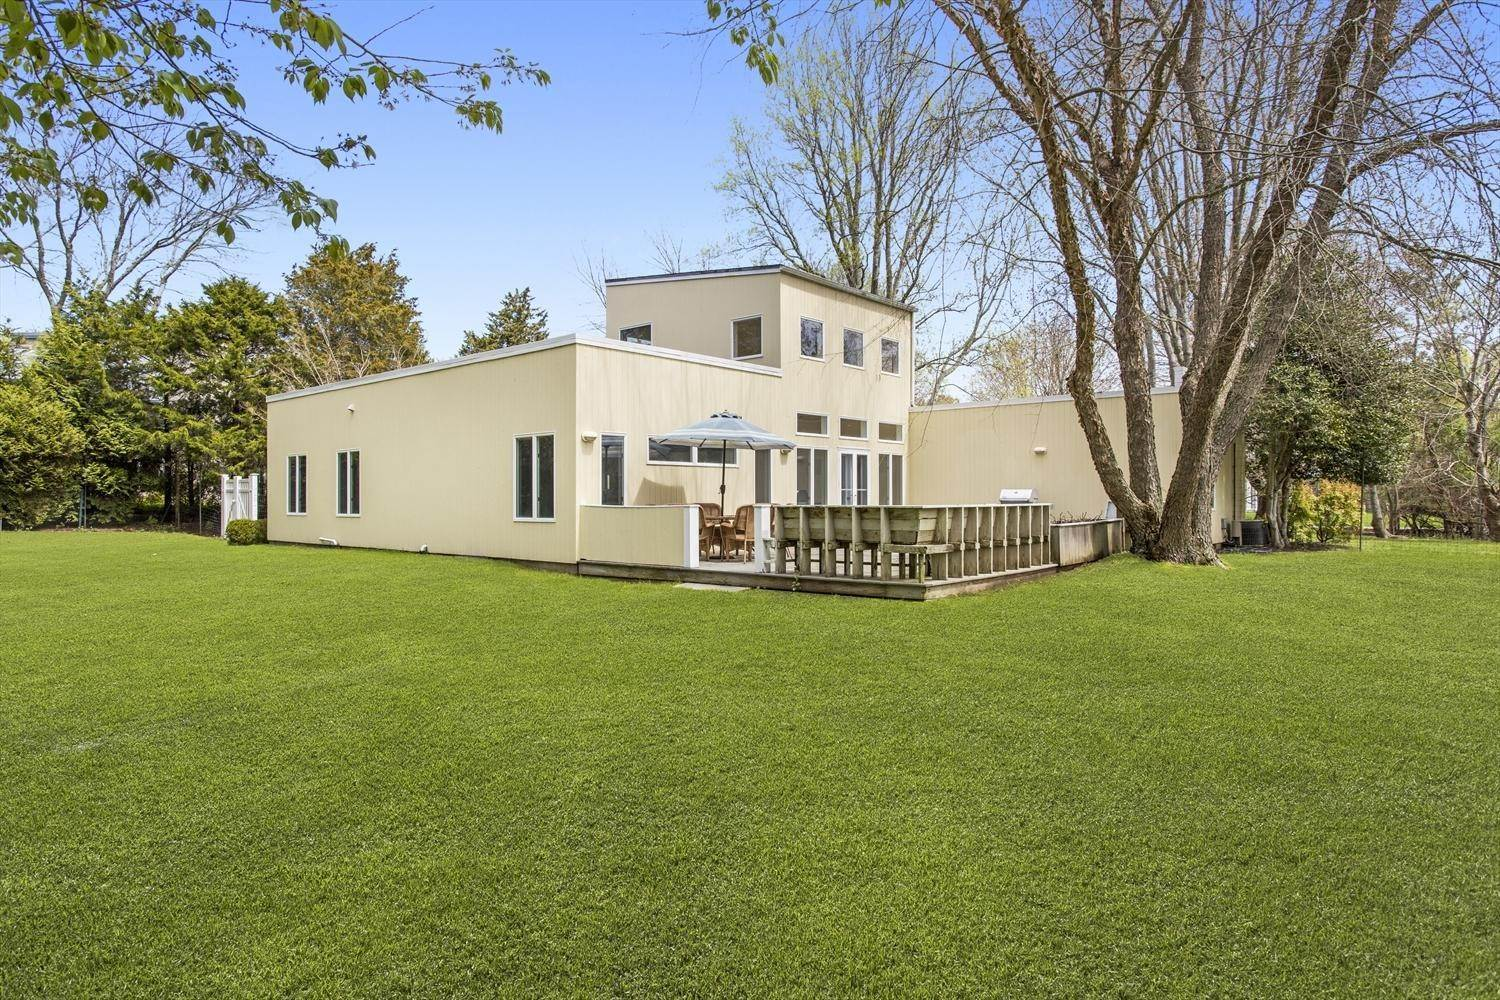 Single Family Home at Easy Living In The Lanes Amagansett, NY 11930